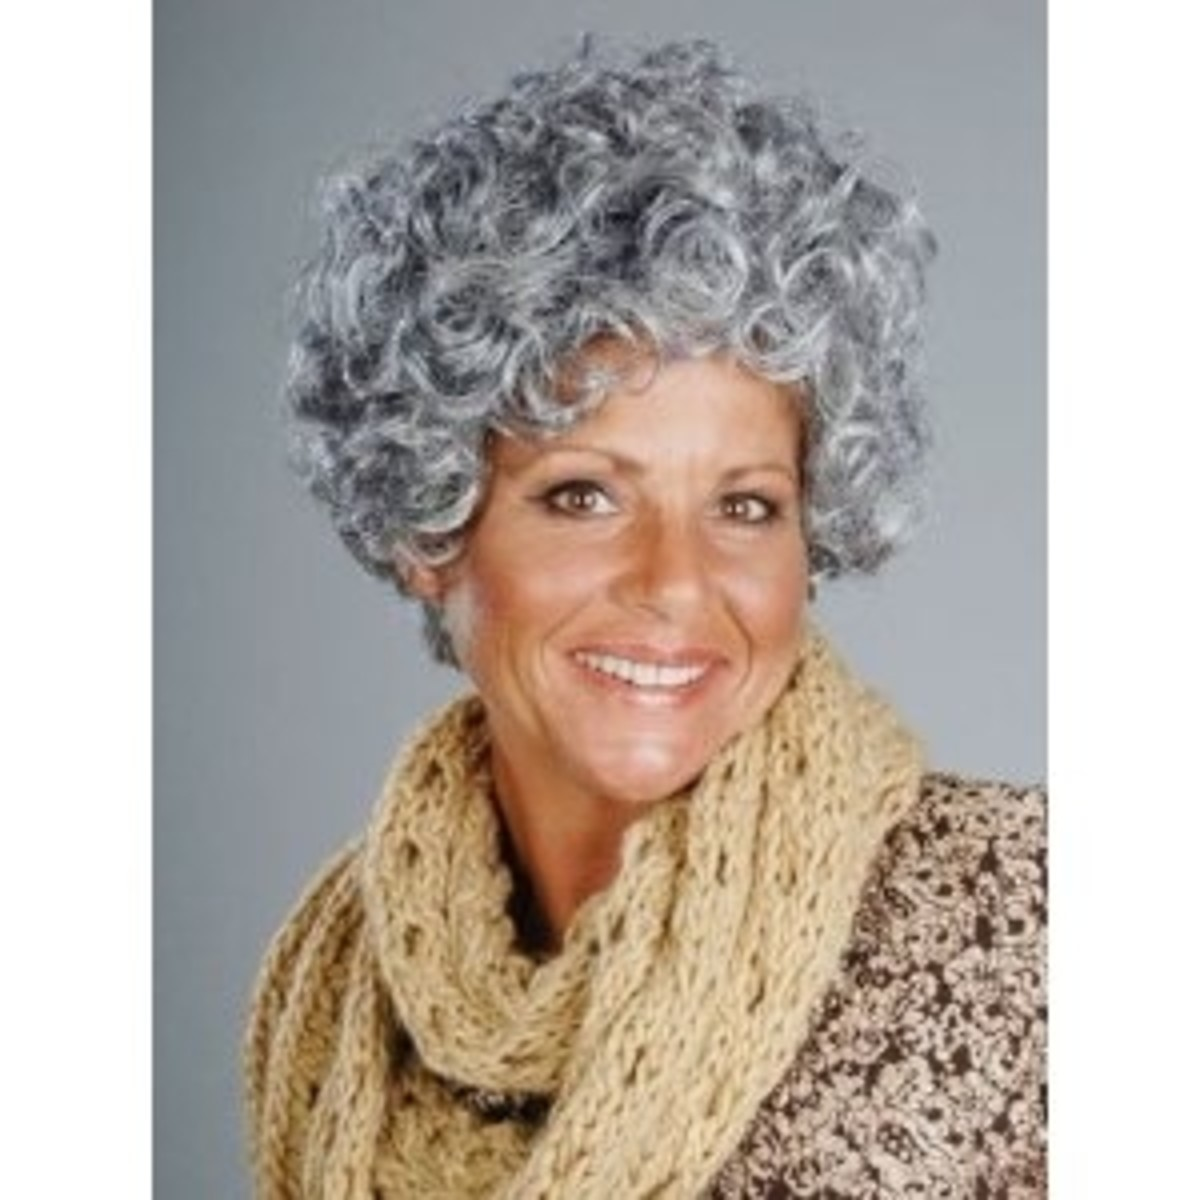 A simple Nanna Grandma grey wig works, too.